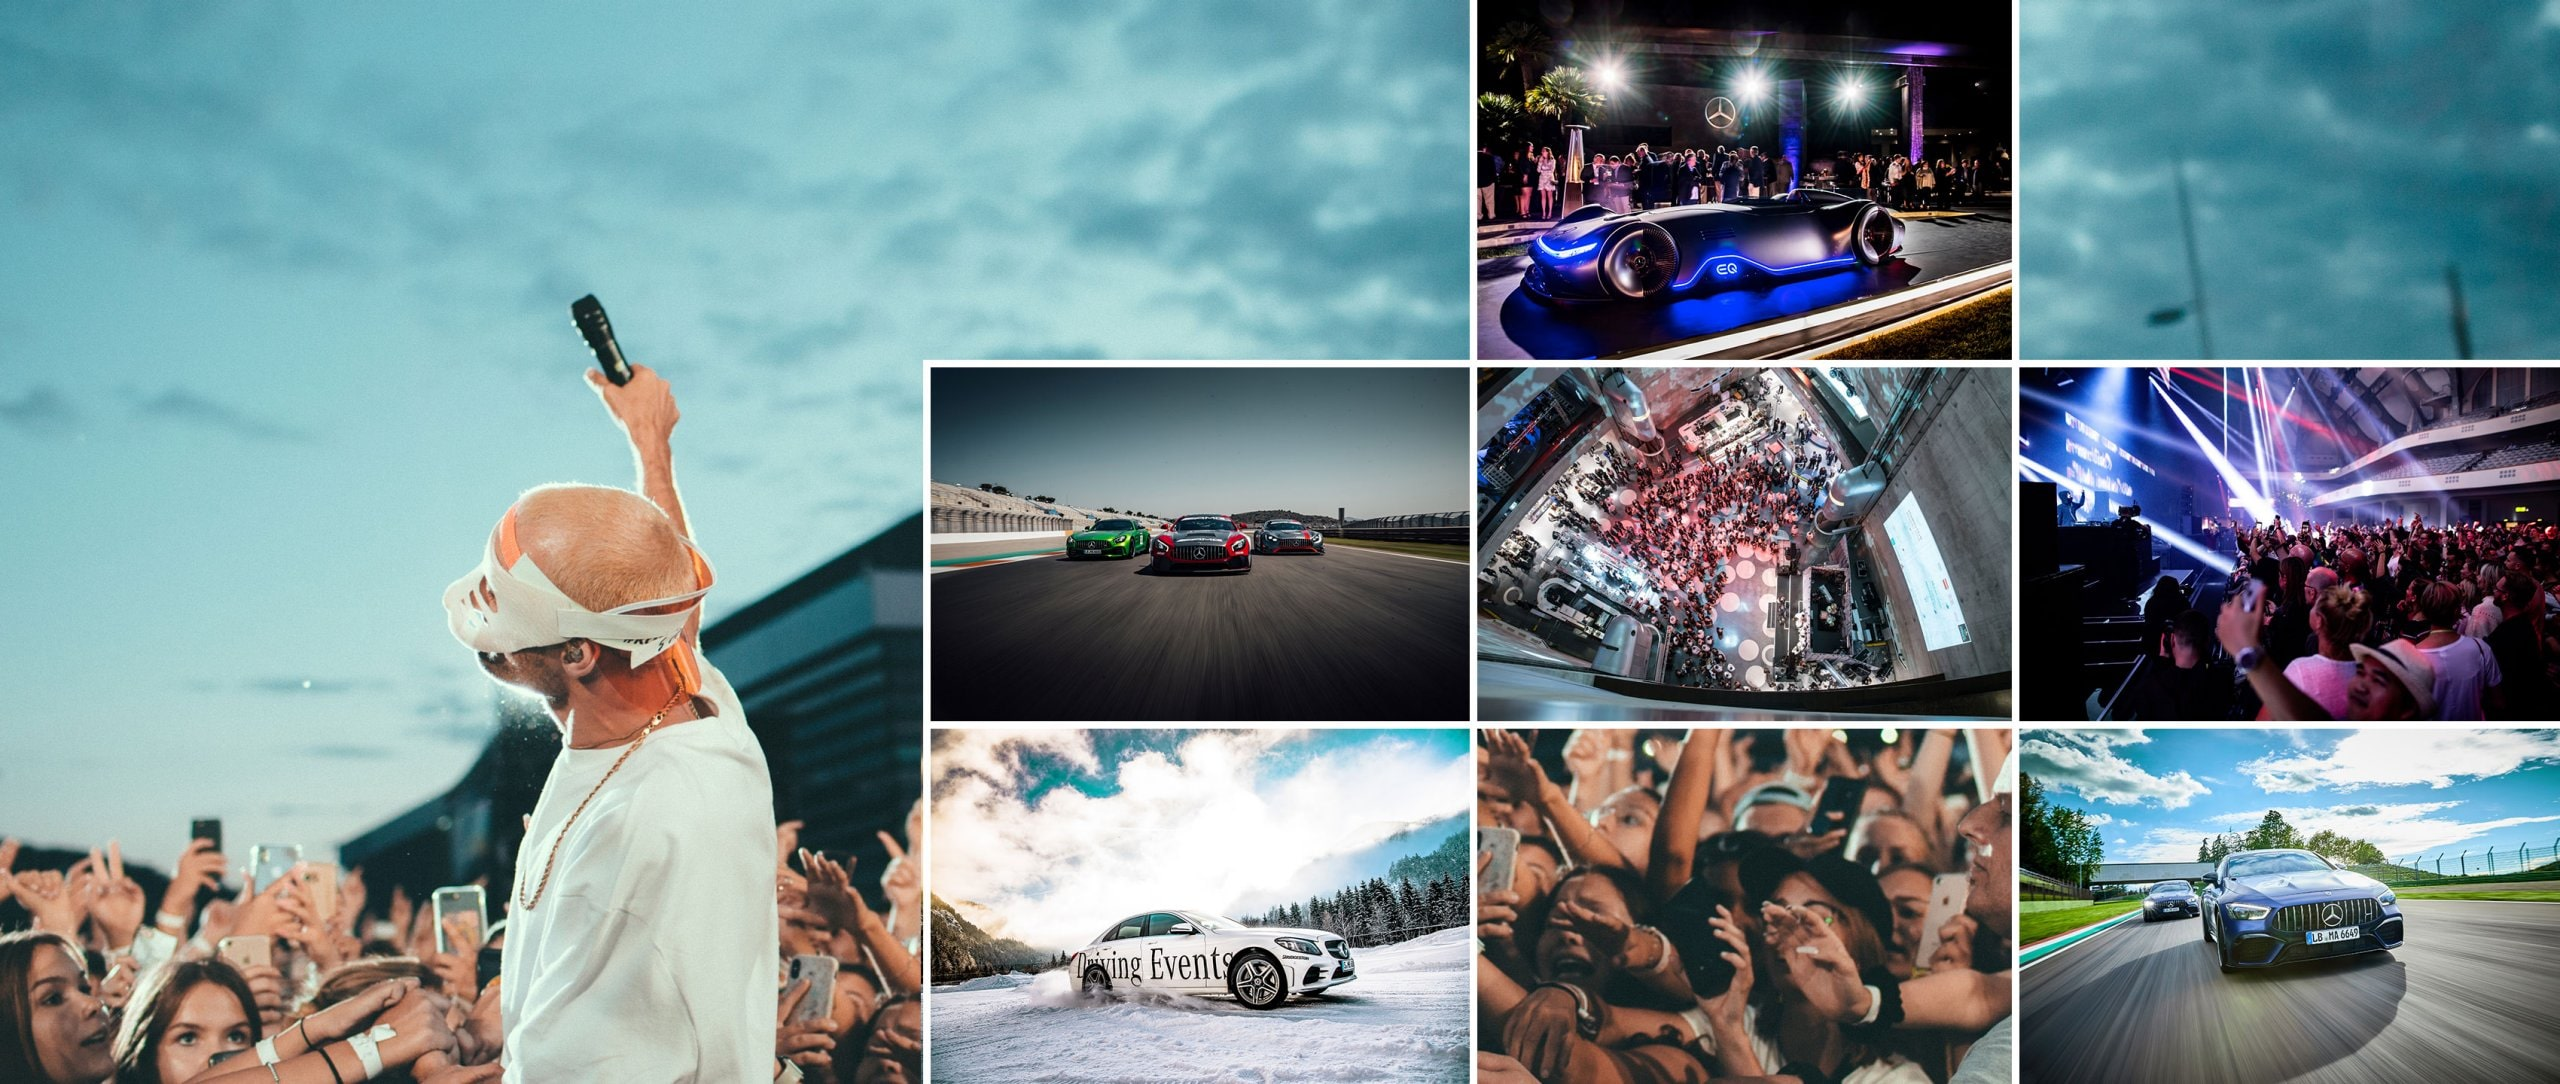 Together with Mercedes-Benz, discover diverse events.